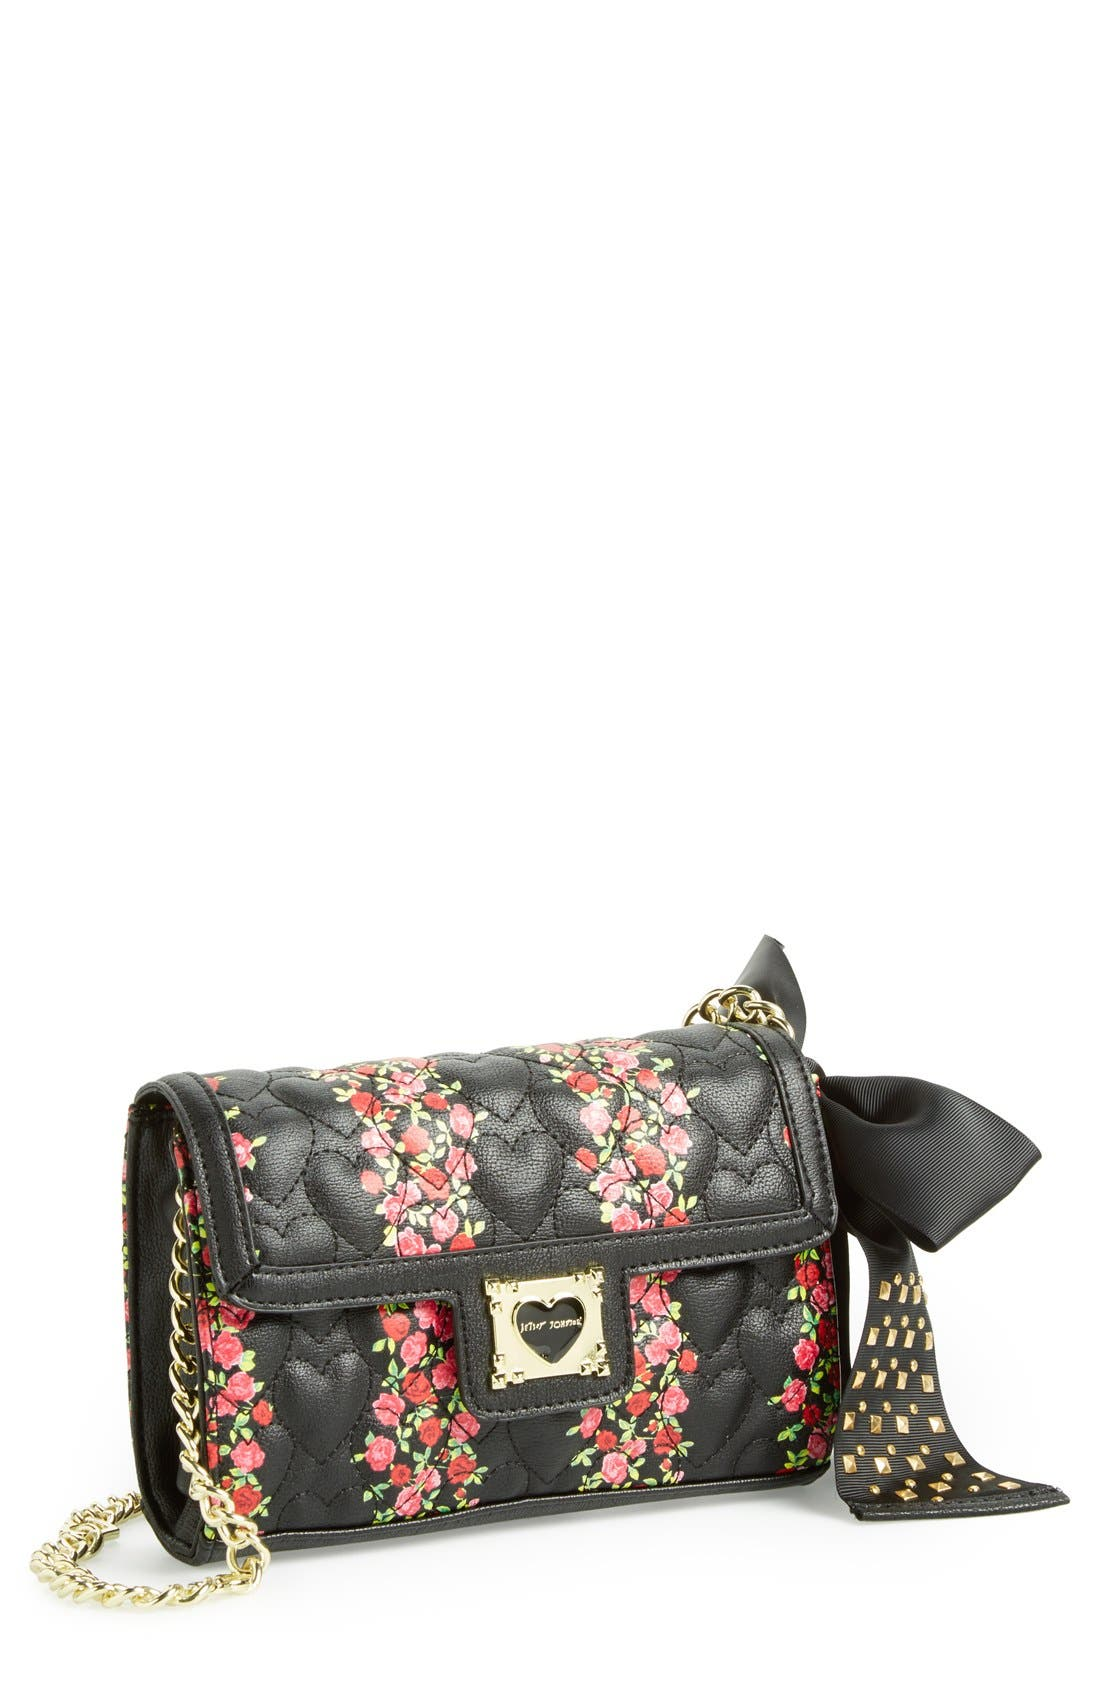 Main Image - Betsey Johnson 'Be My Sweetheart' Crossbody Bag